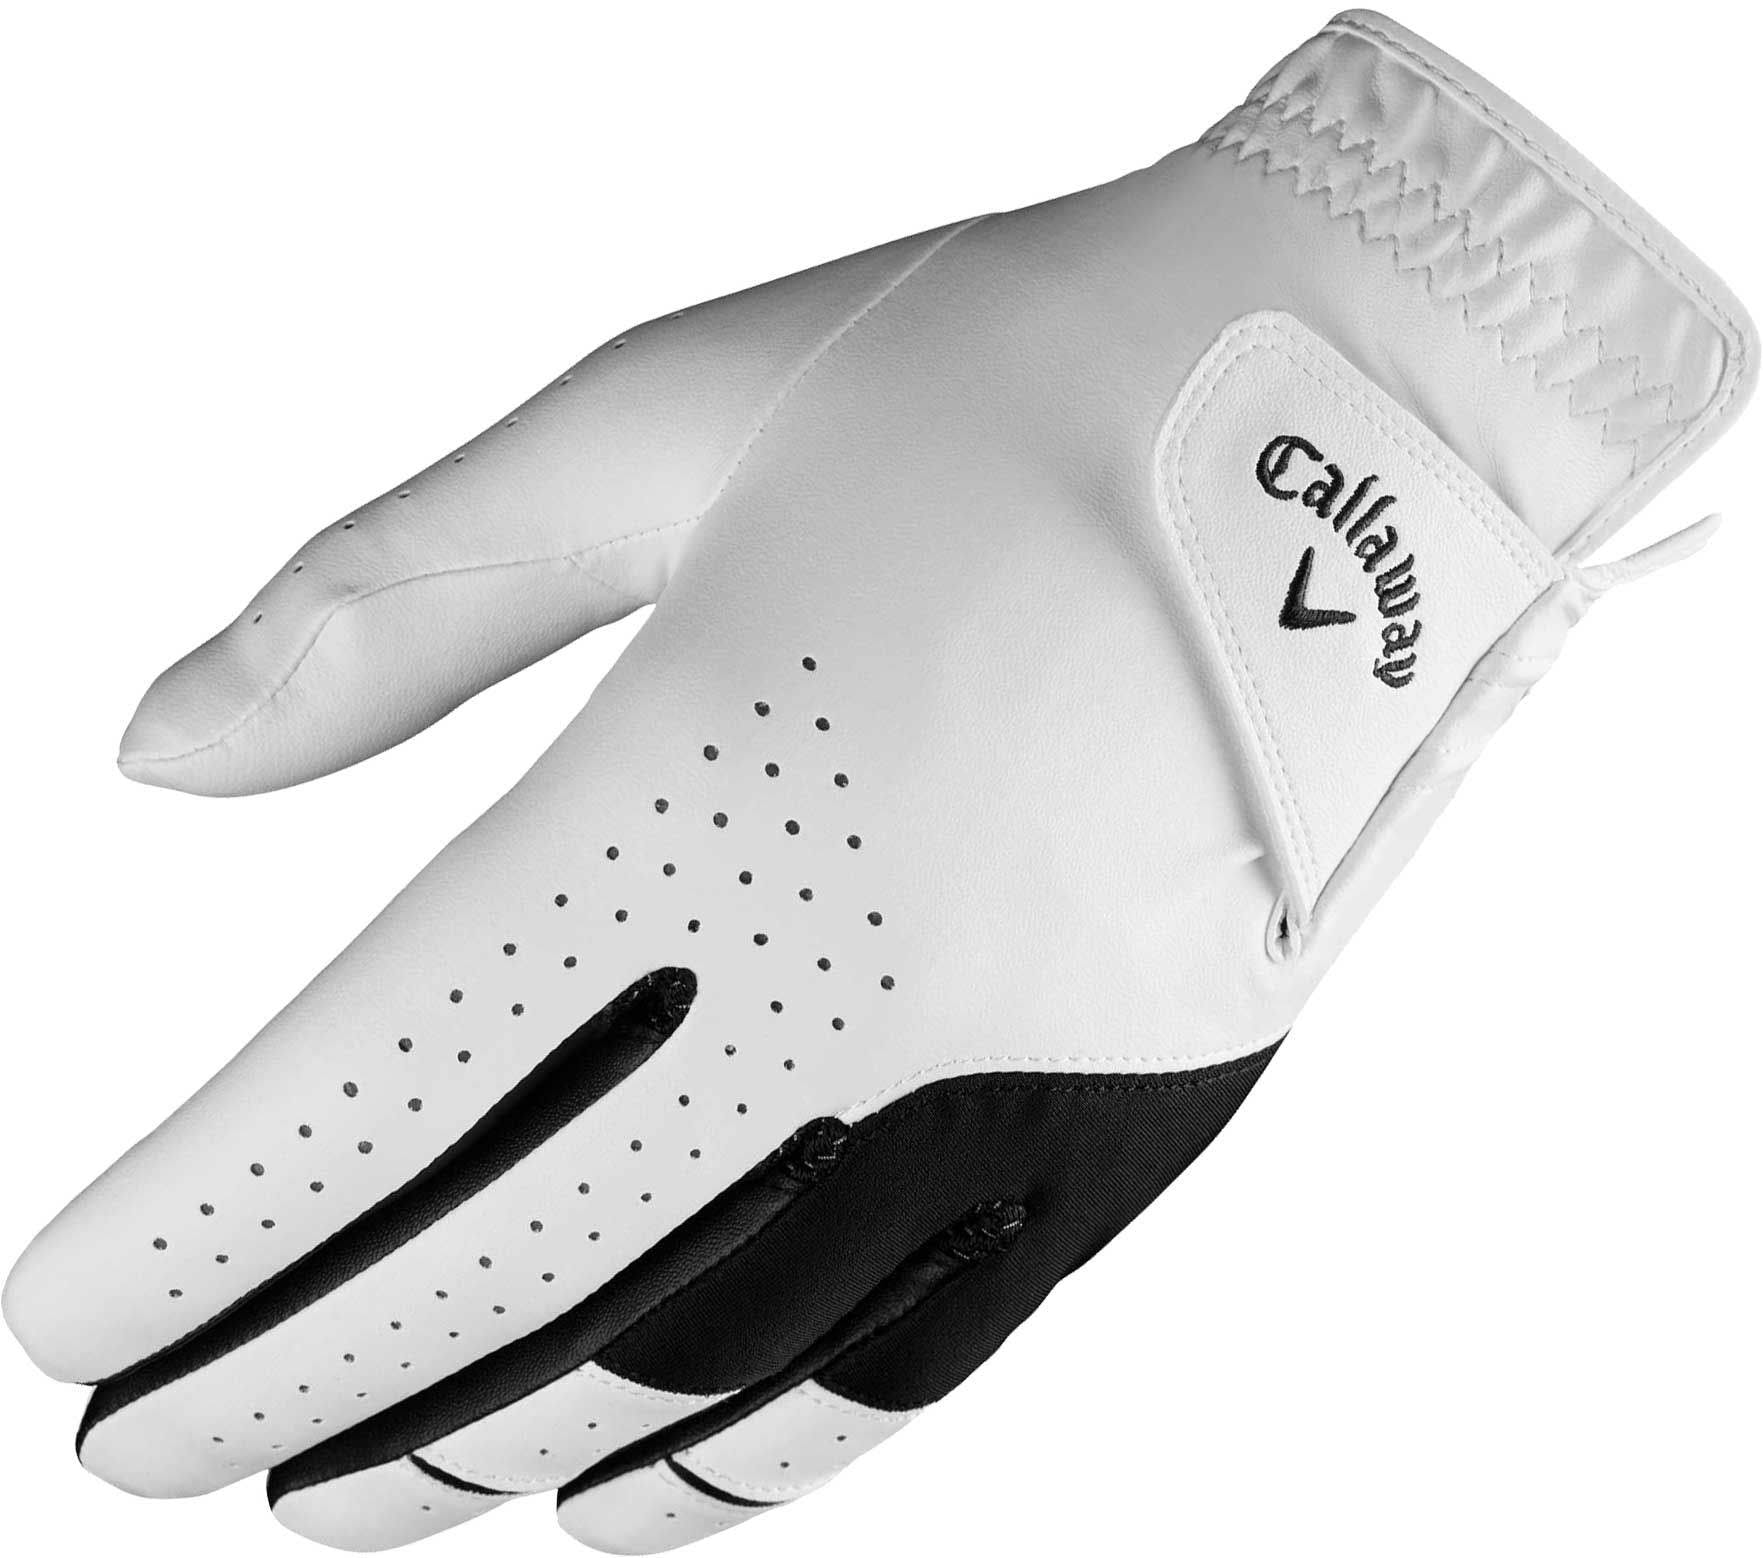 Callaway Women's Weather Spann Golf Gloves – 2 Pack, Size: Large